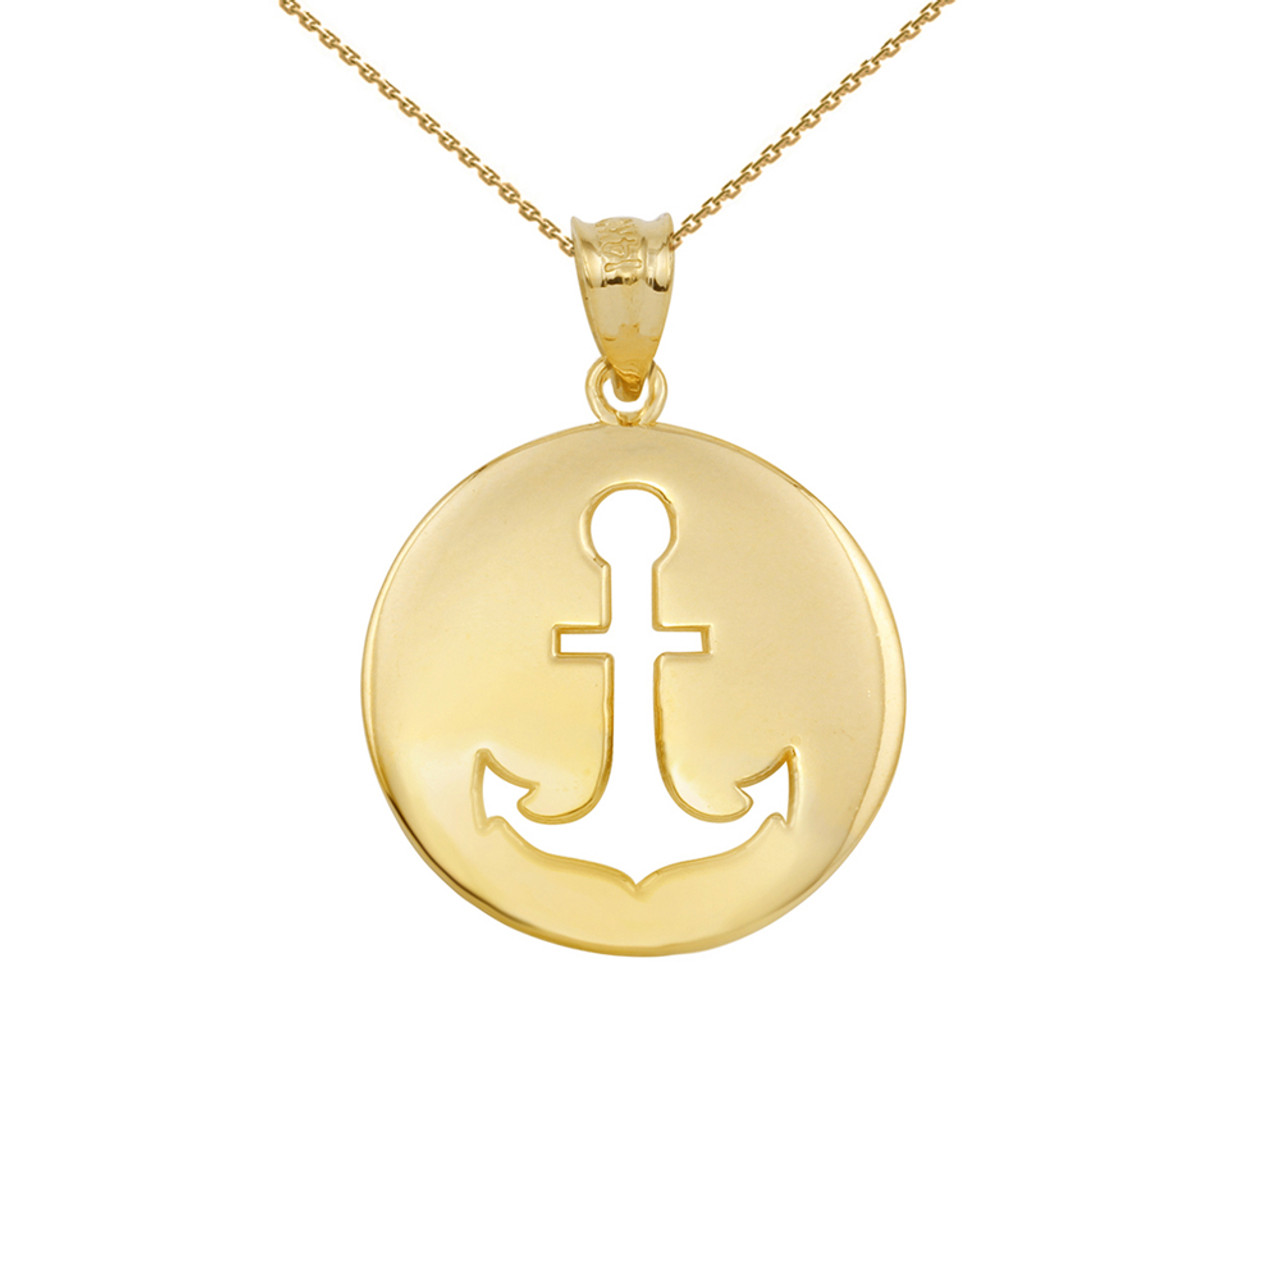 Gold Anchor Silhouette Circle Pendant Necklace